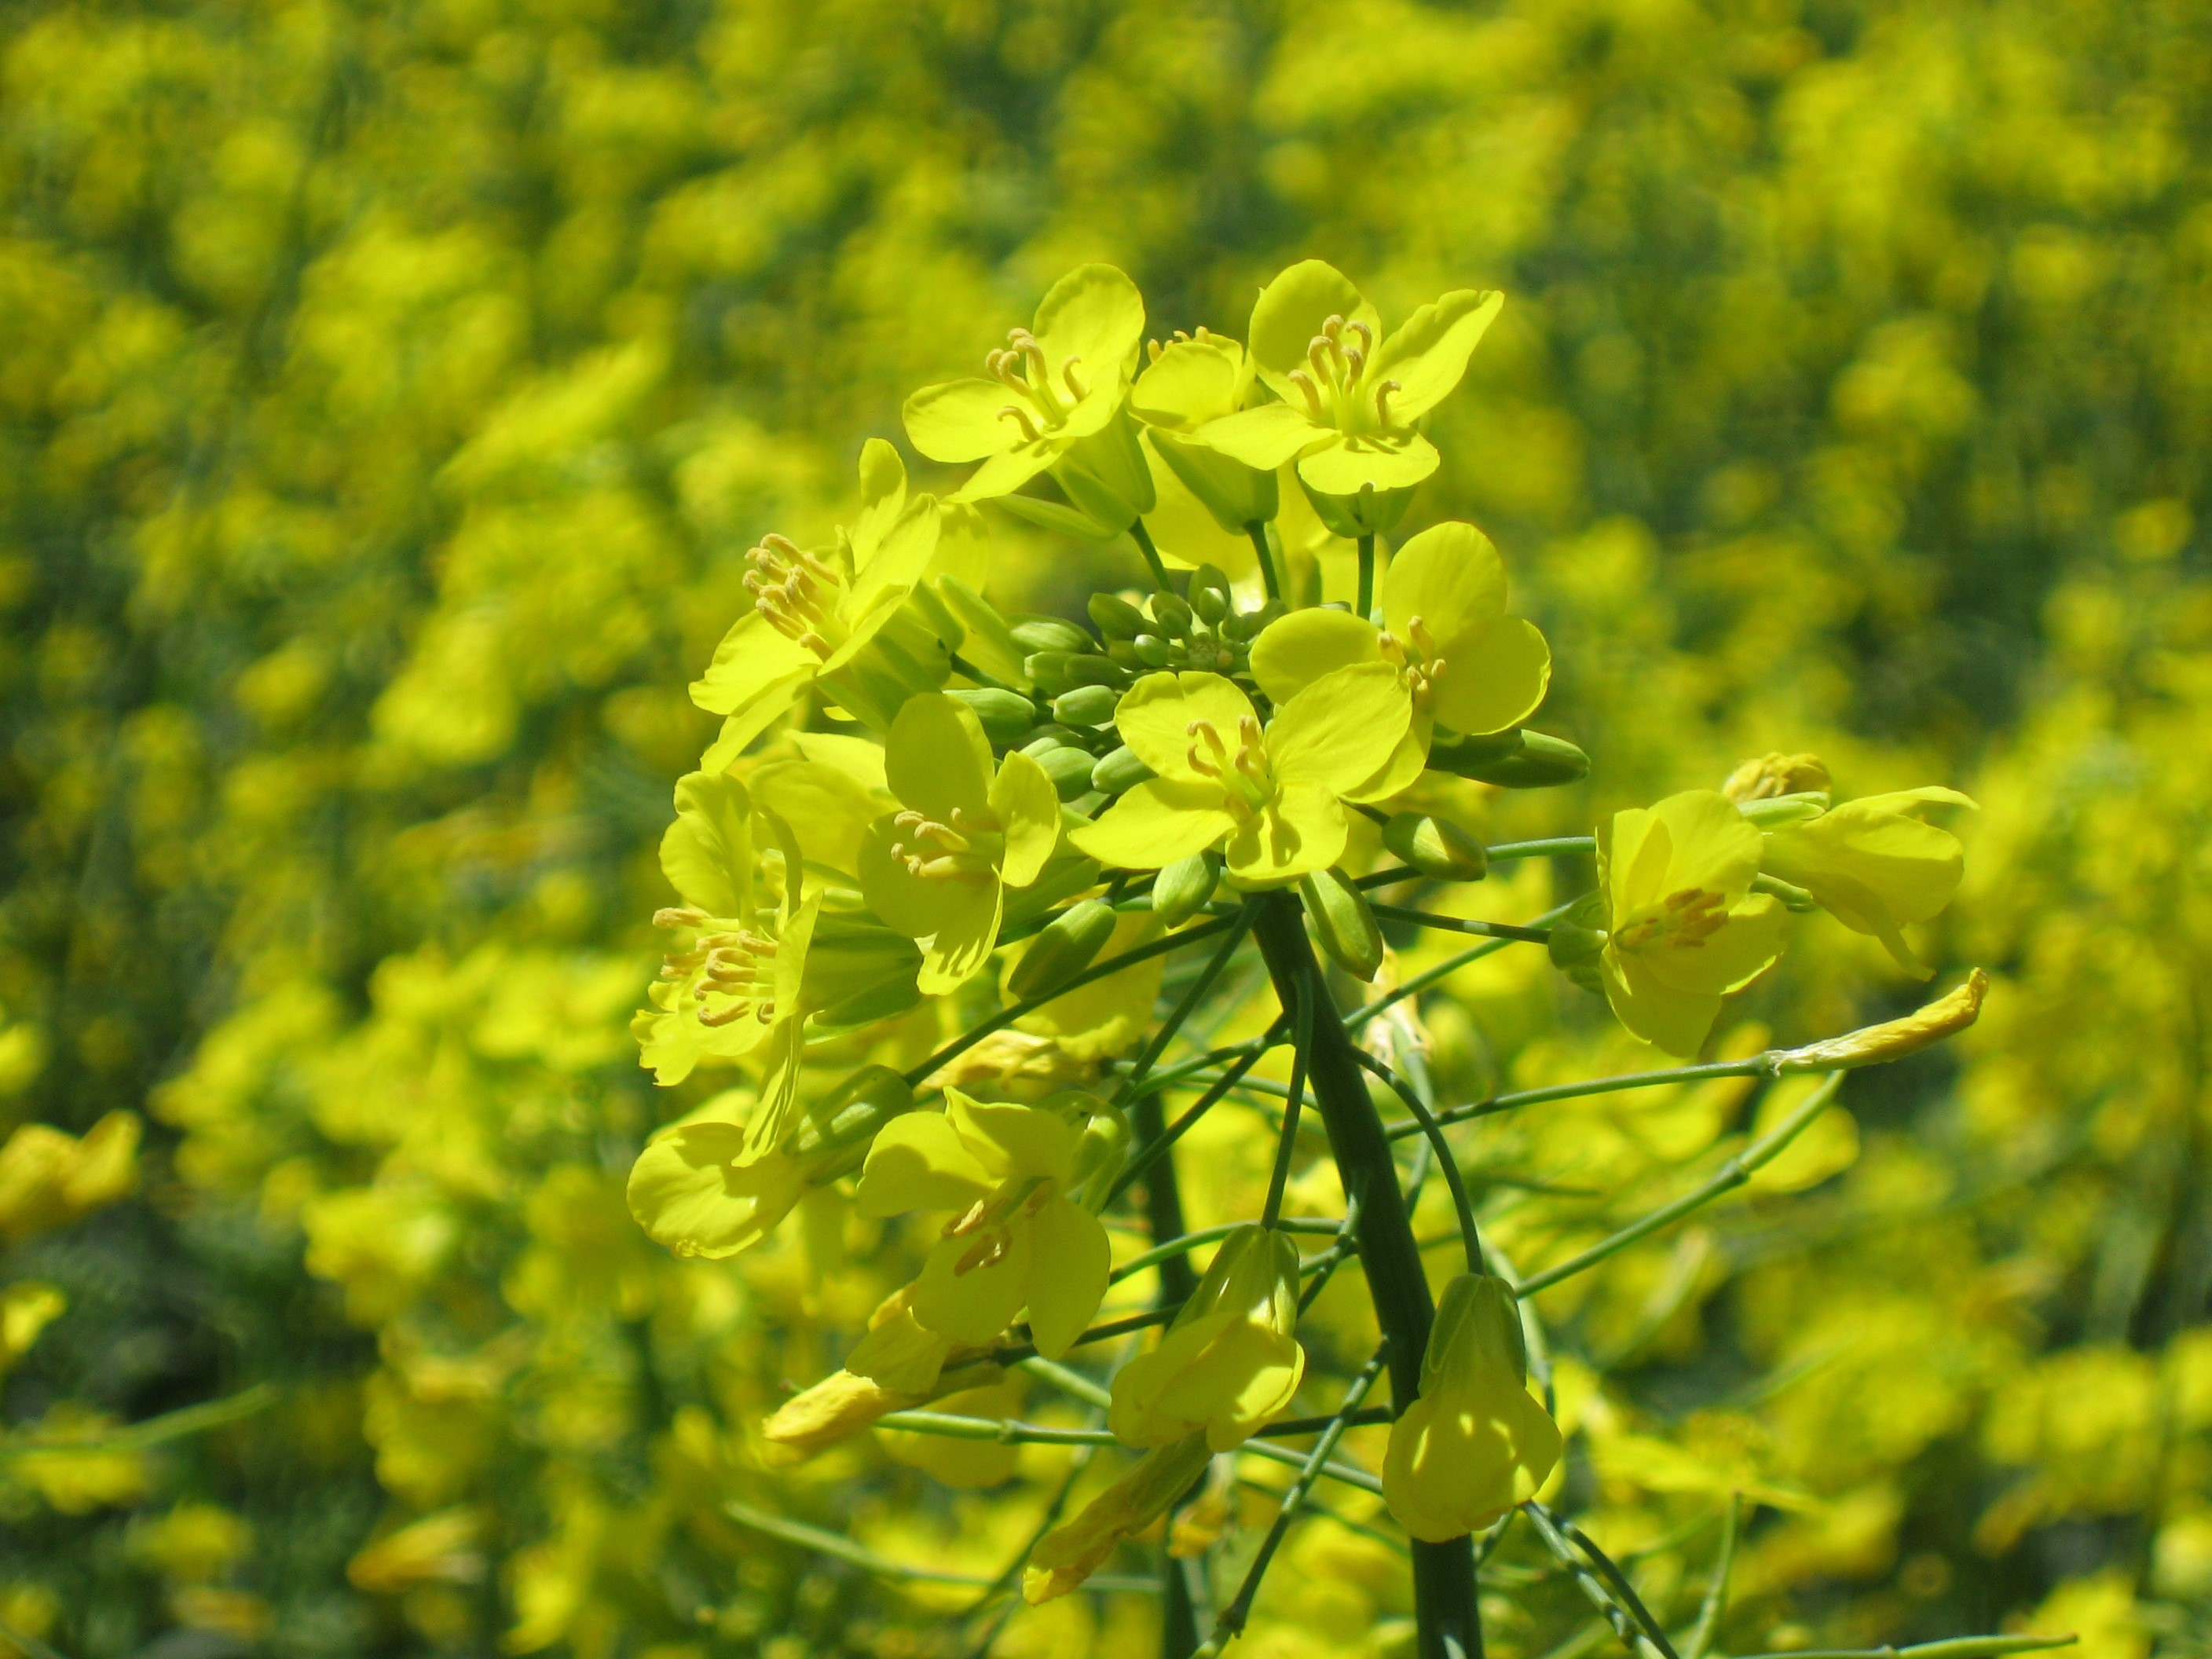 Oklahoma Farm Report Us Looking To Expand Canola Crop Due To Demand